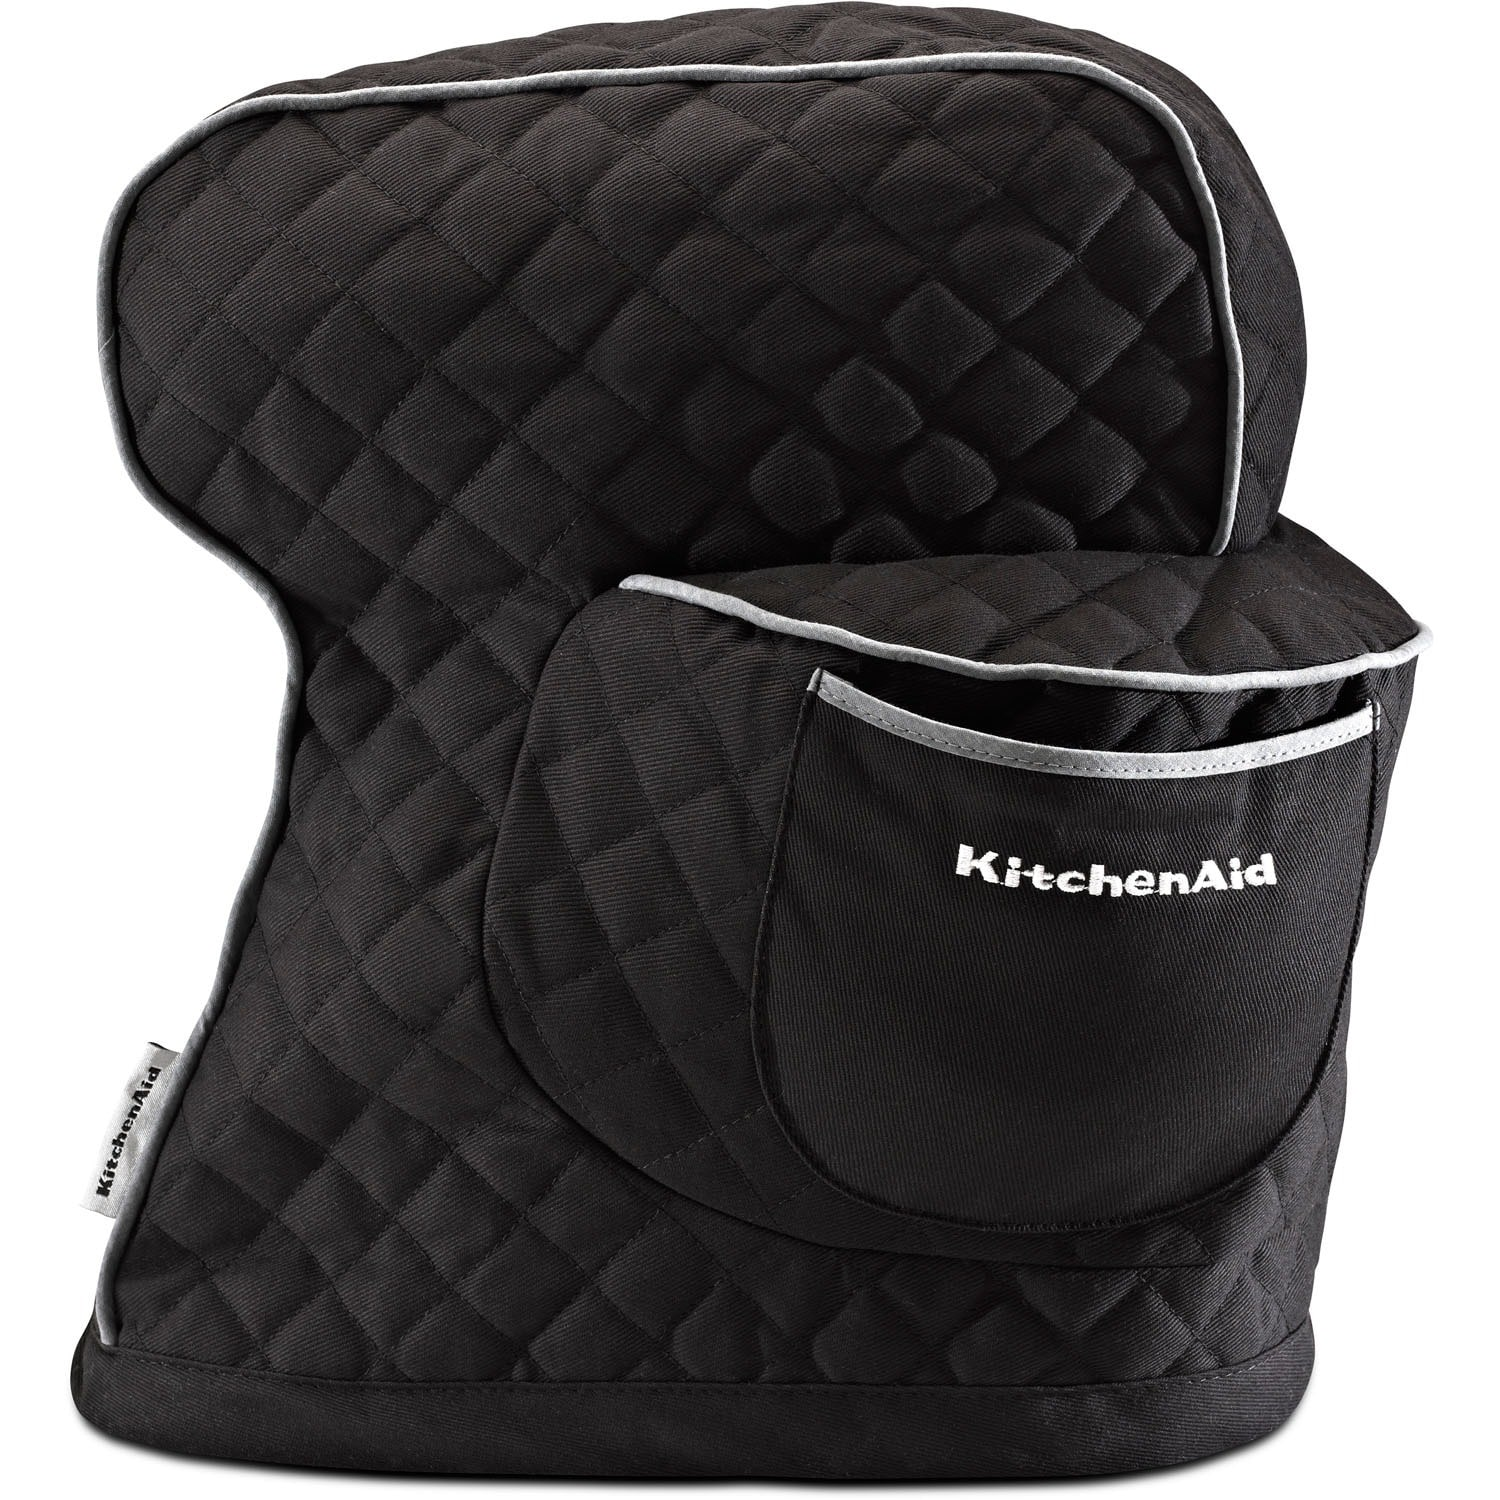 KitchenAid Quilted Cotton Tilt-Head Stand Mixer Cover (On...